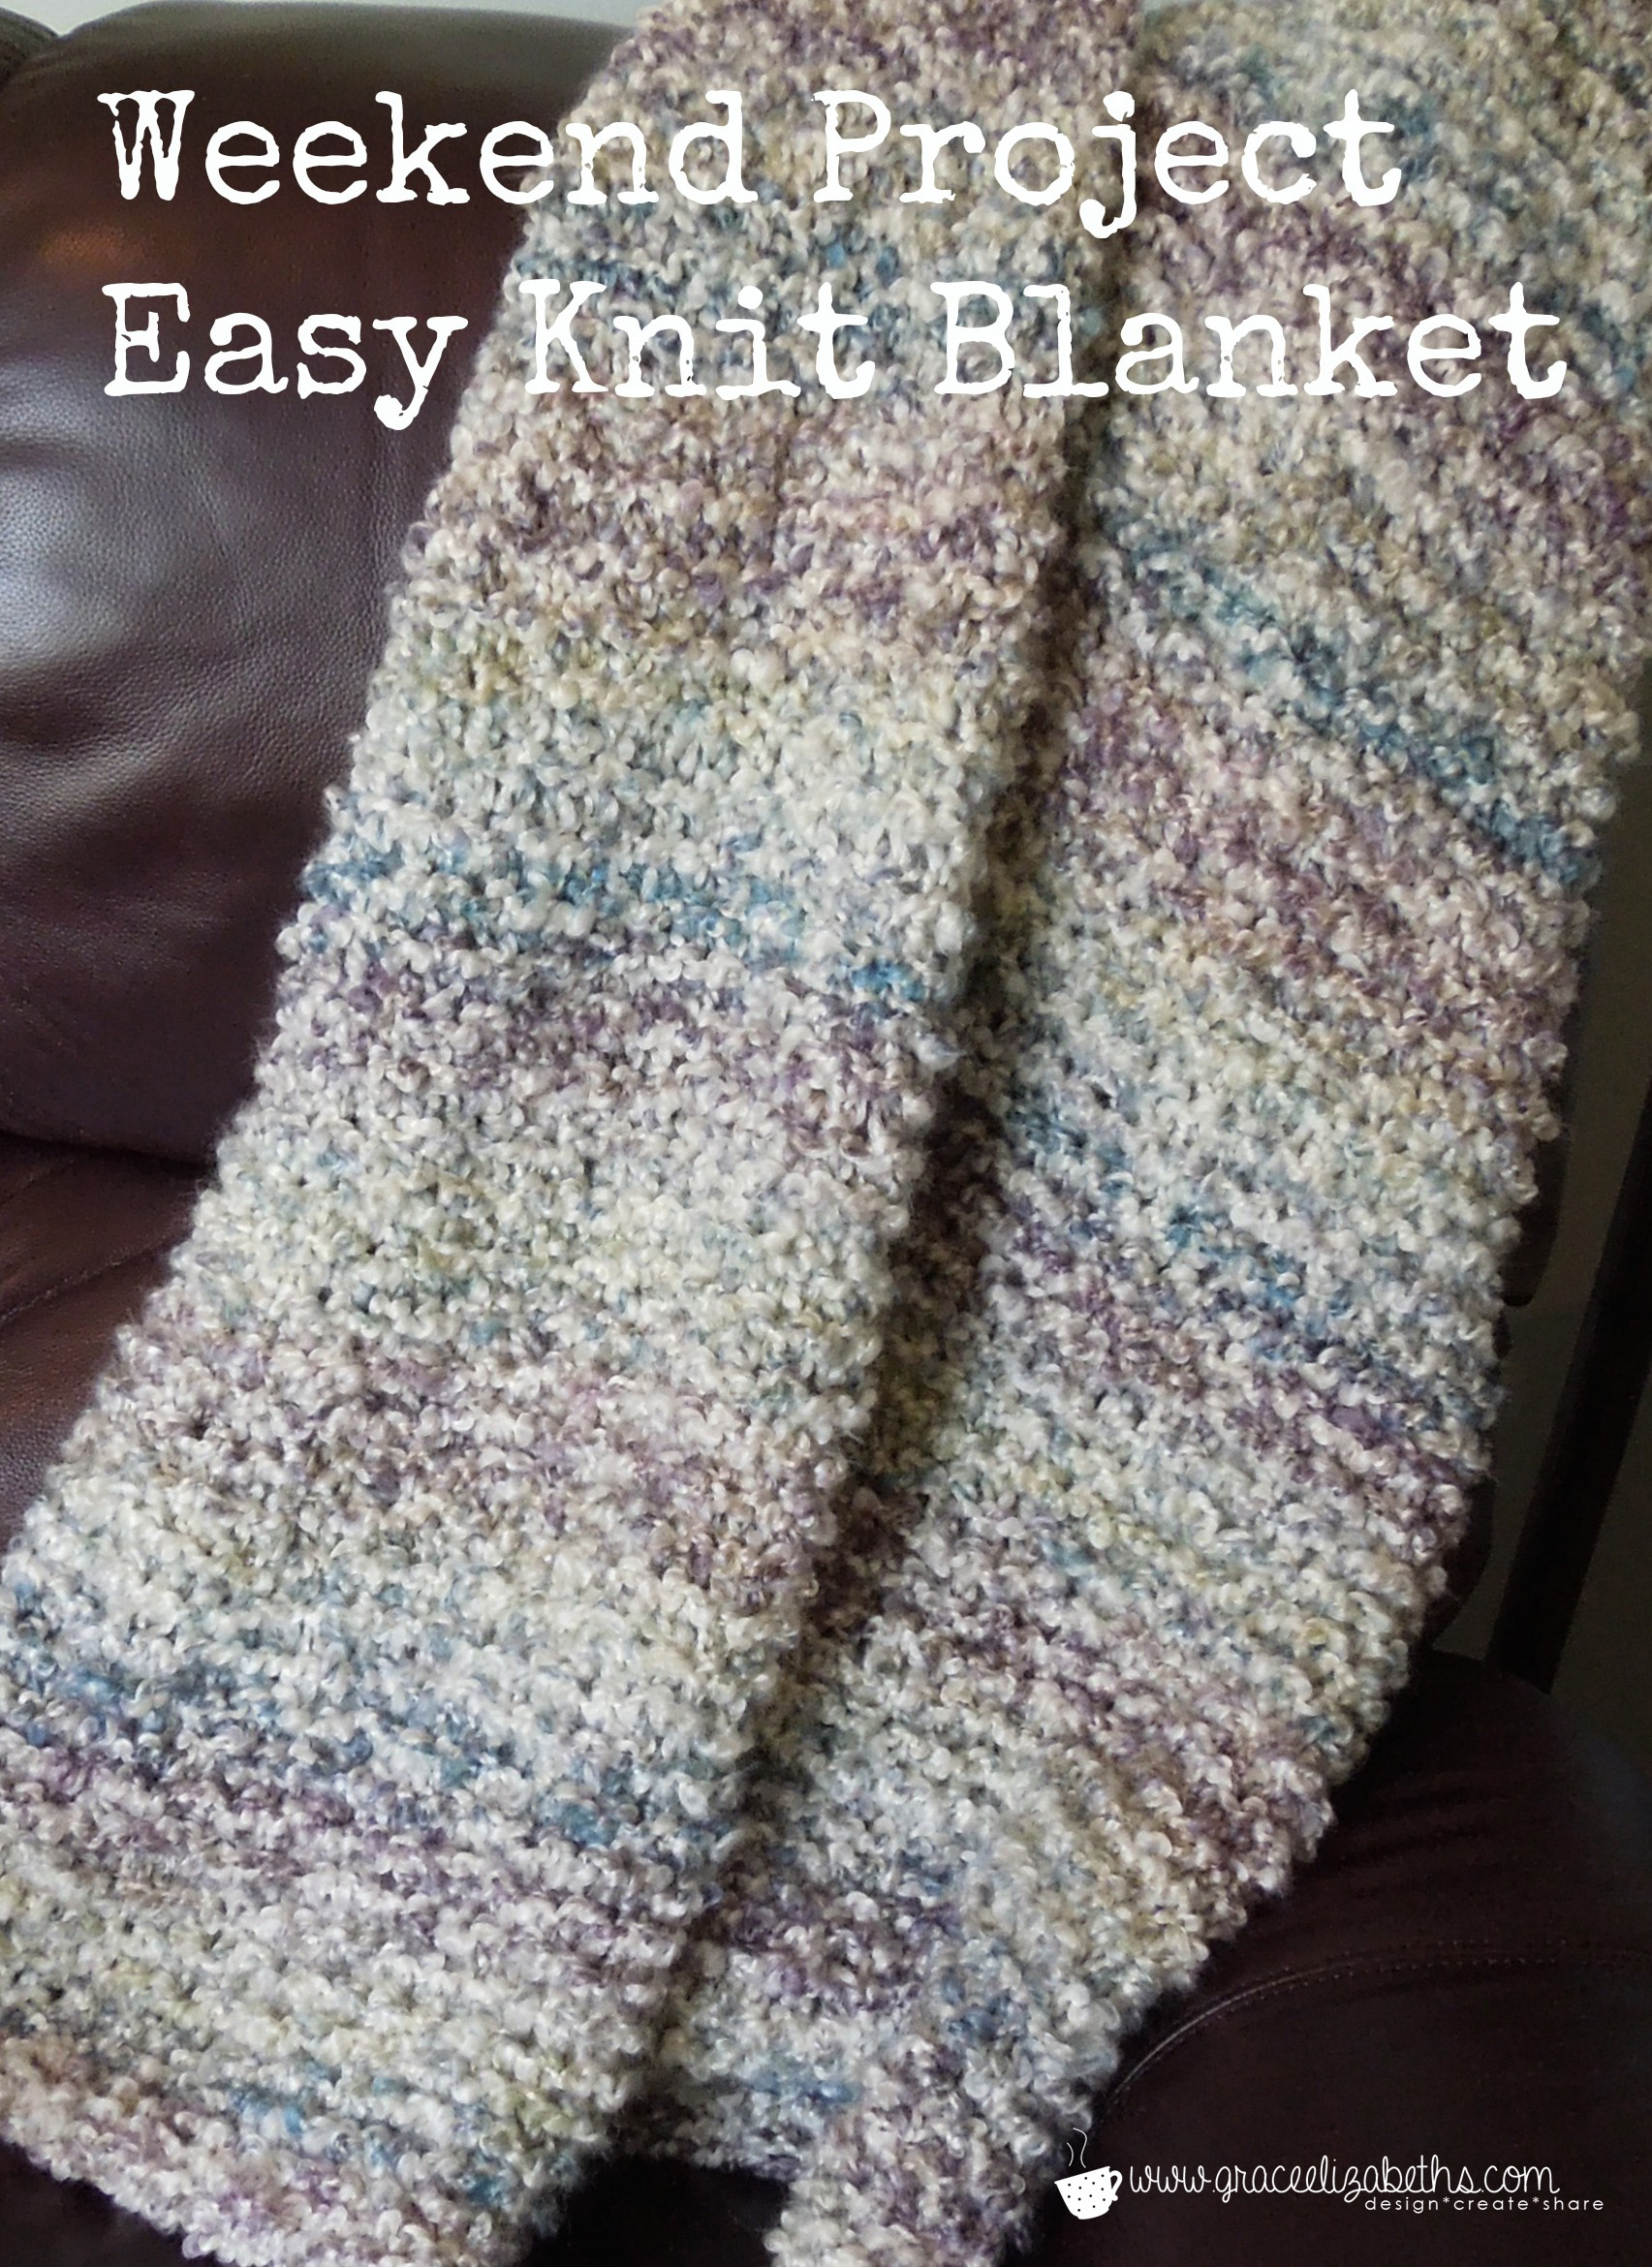 Easy Knit Blanket How To : Weekend Project: Free Easy Knit Blanket Pattern - Grace Elizabeths